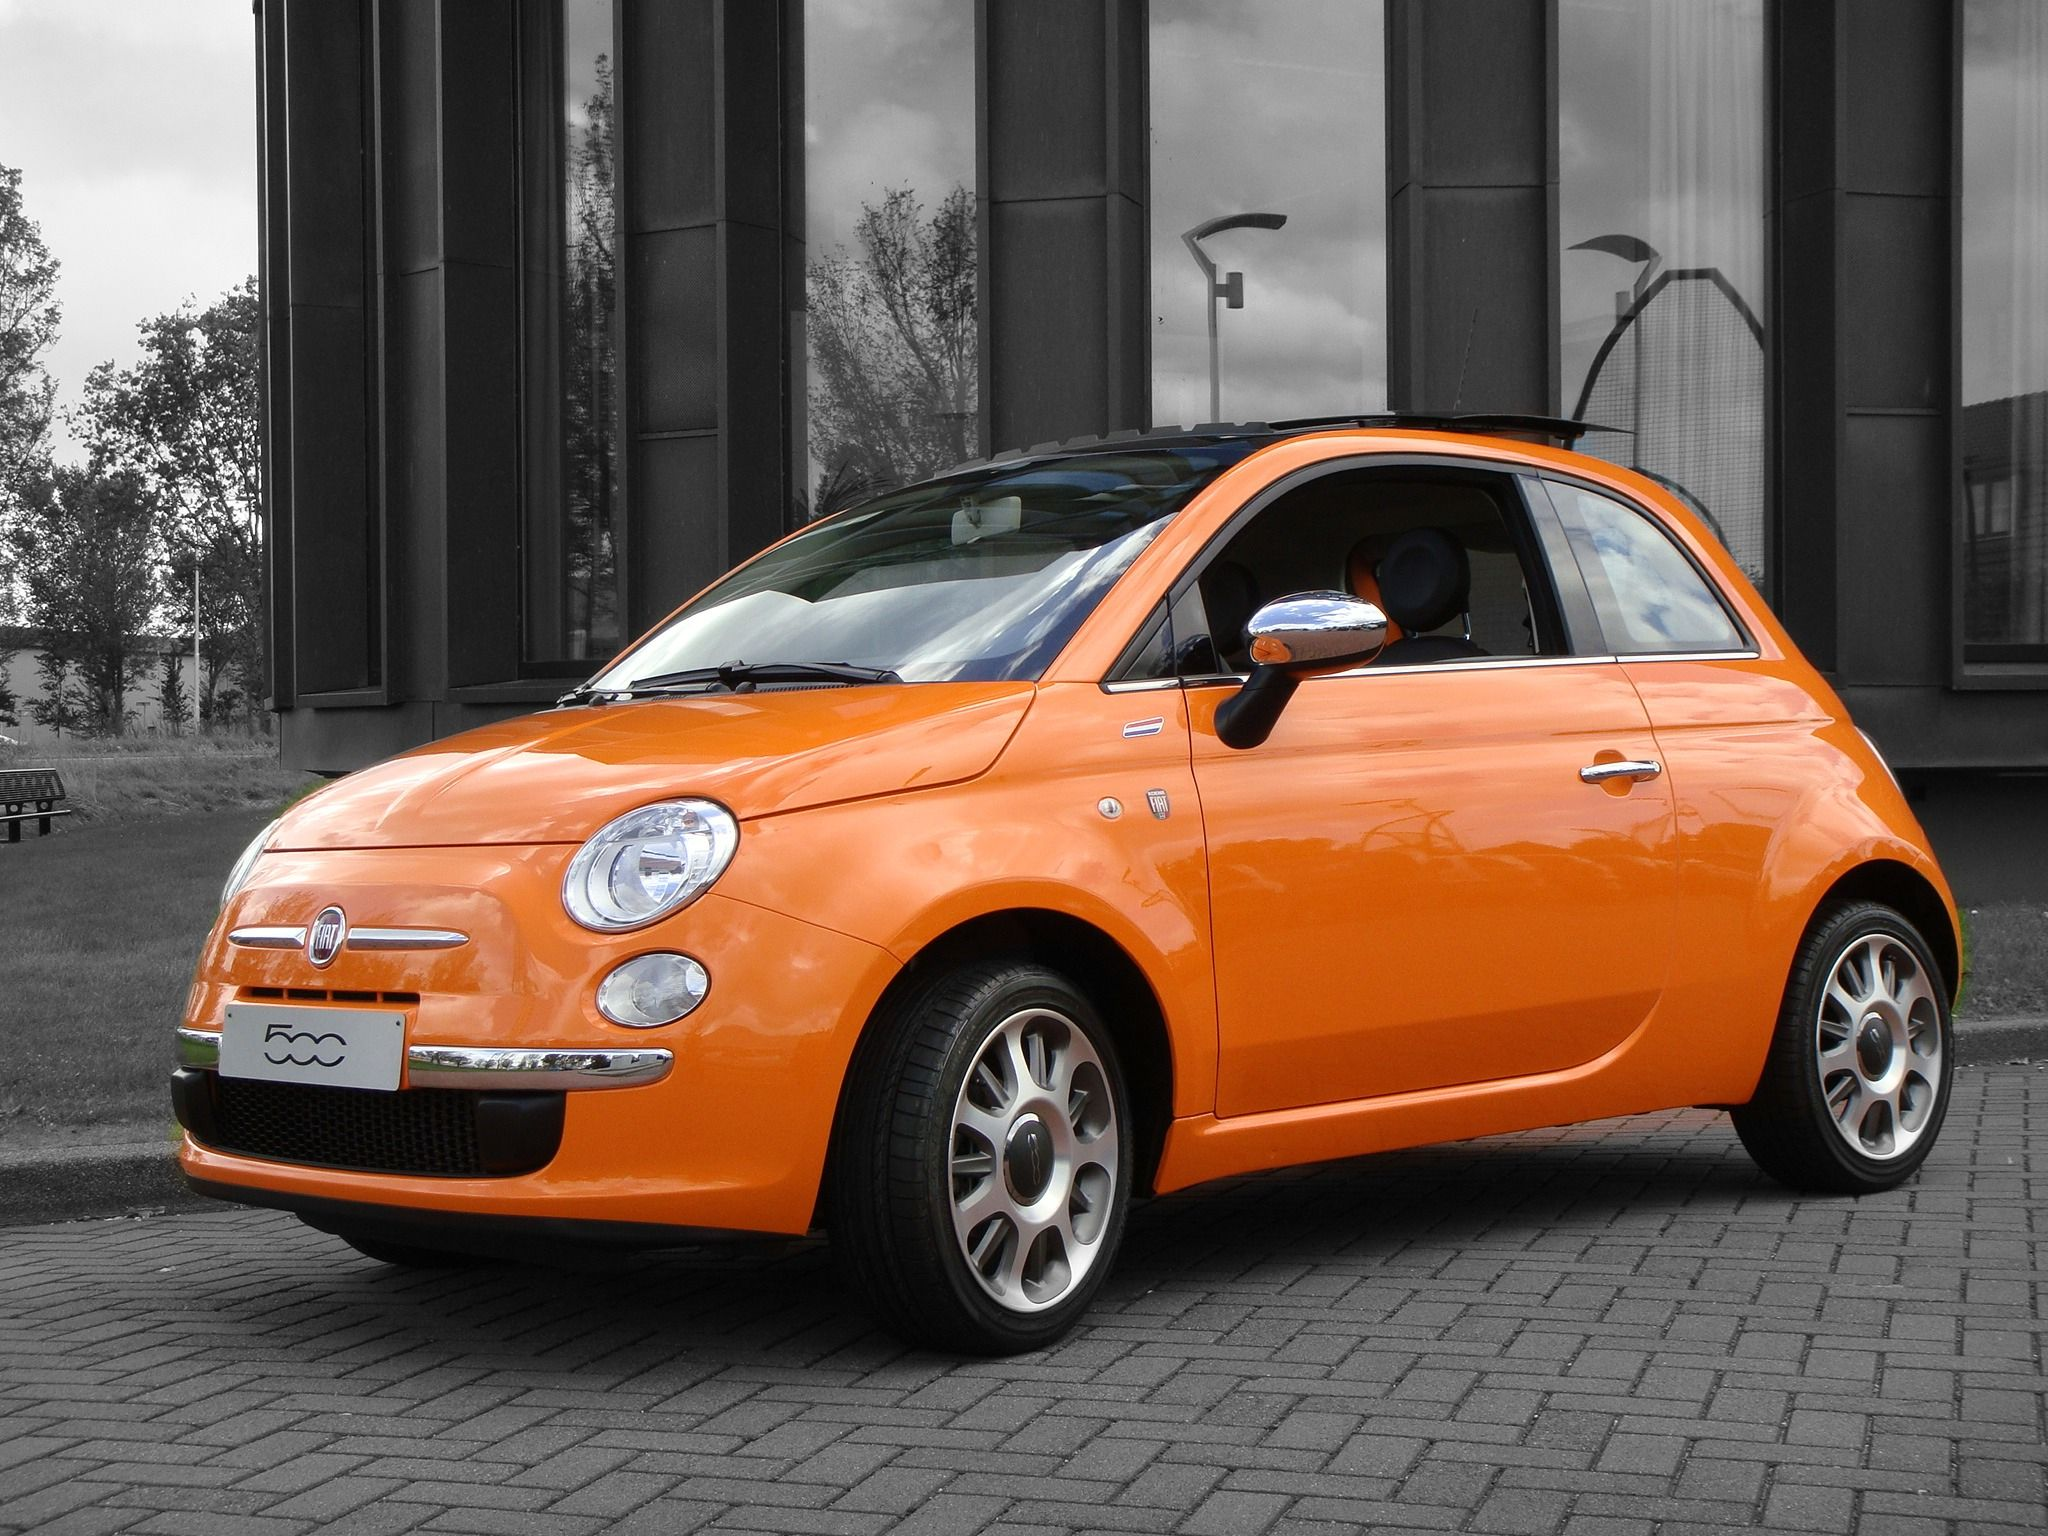 Fiat 500 Orange Specially Made For The Netherlands With Images